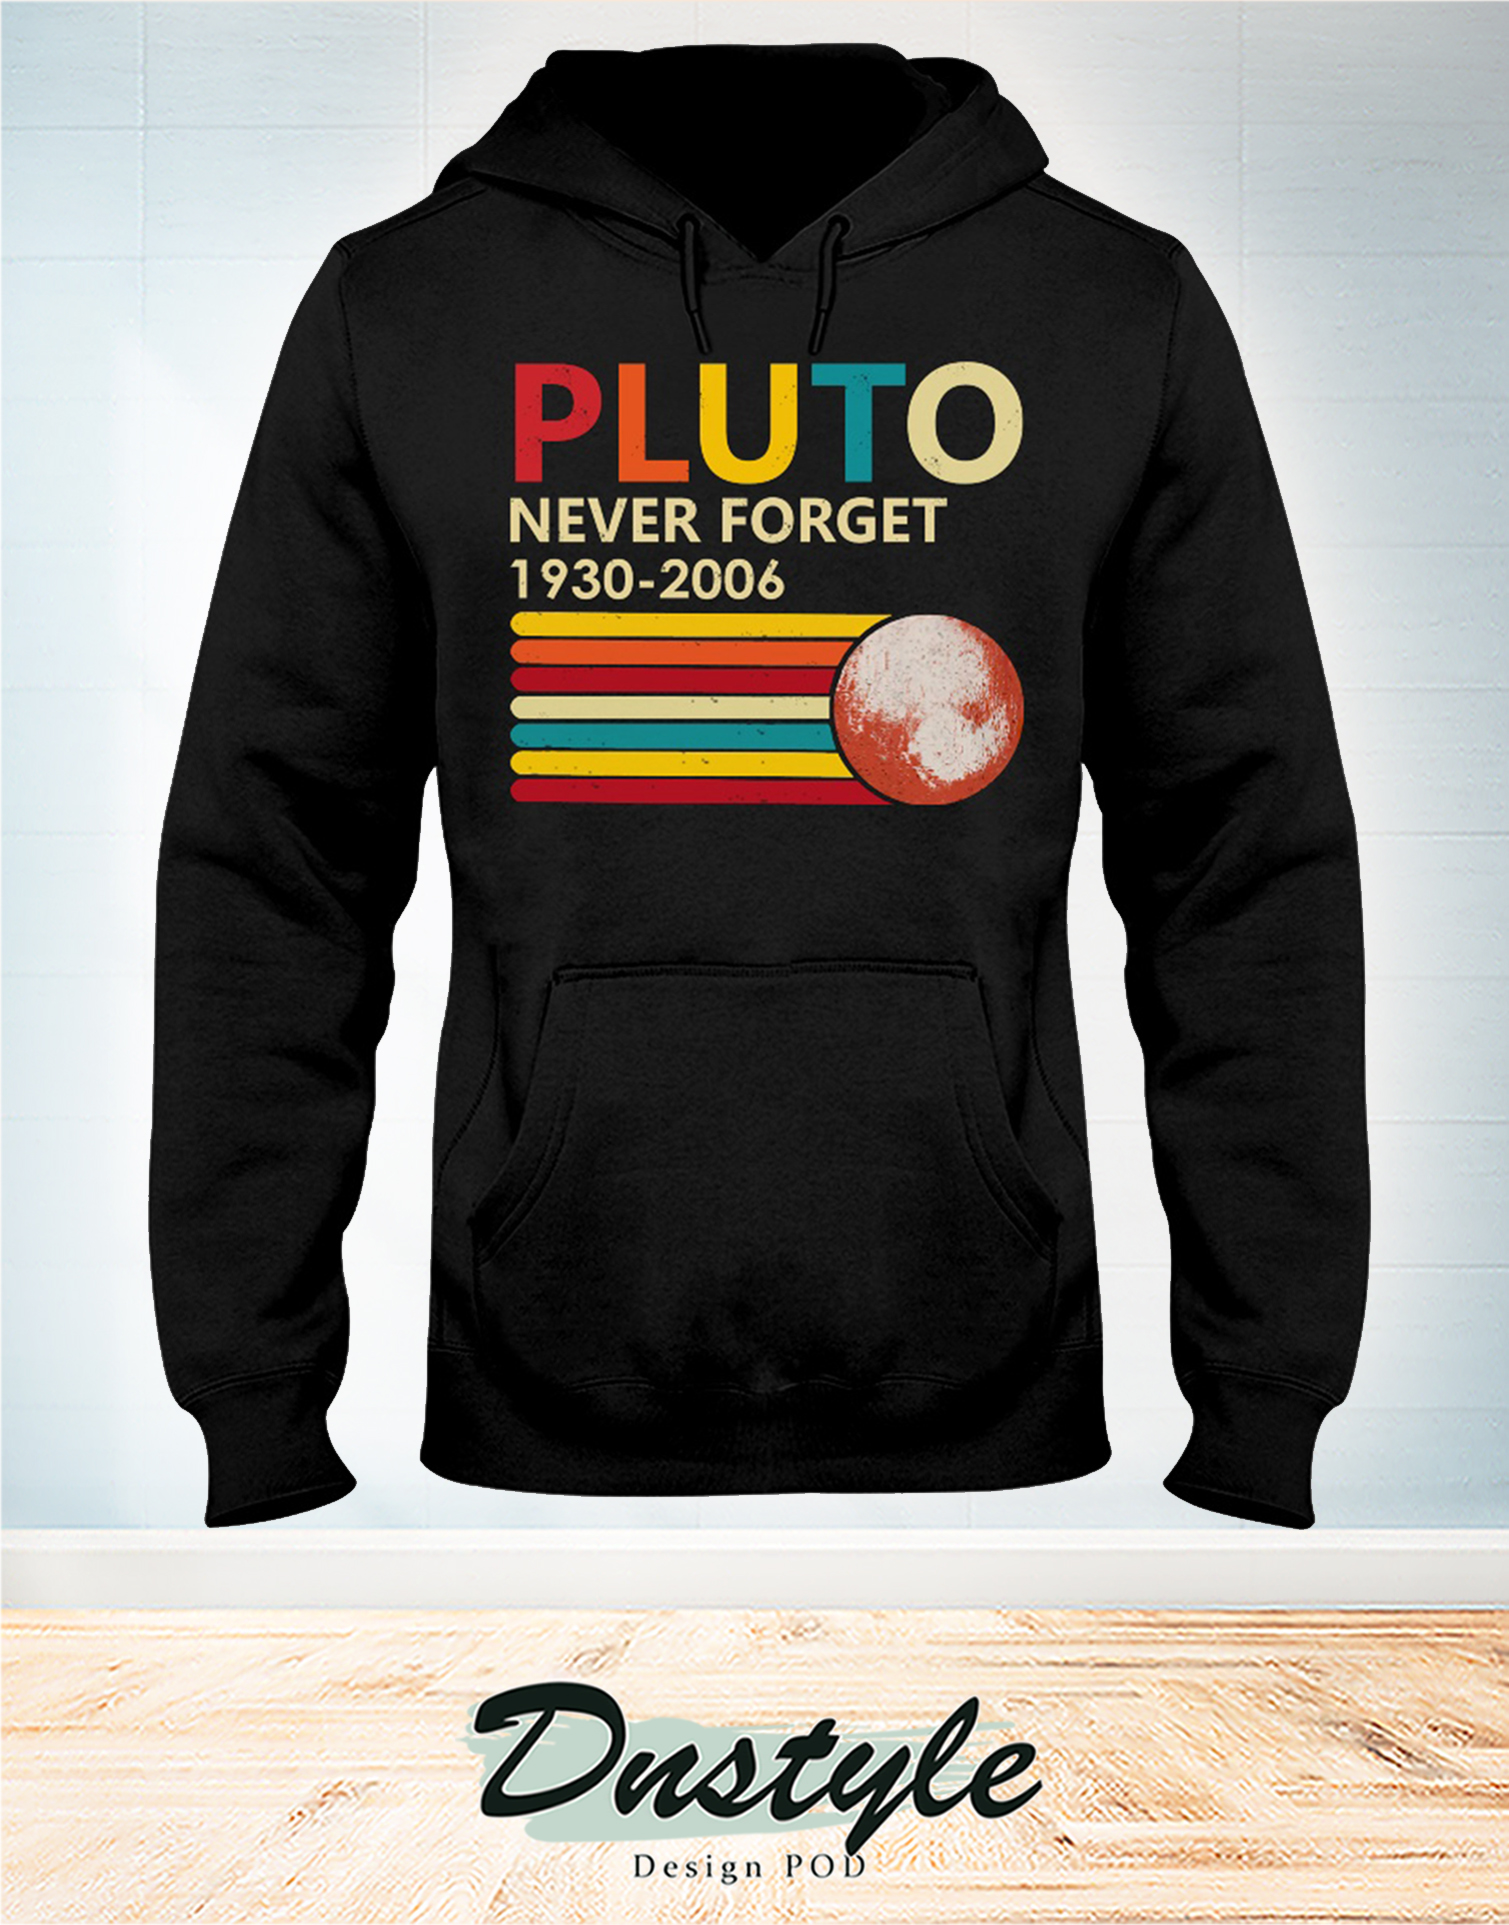 Pluto never forget 1930 - 2006 hoodie